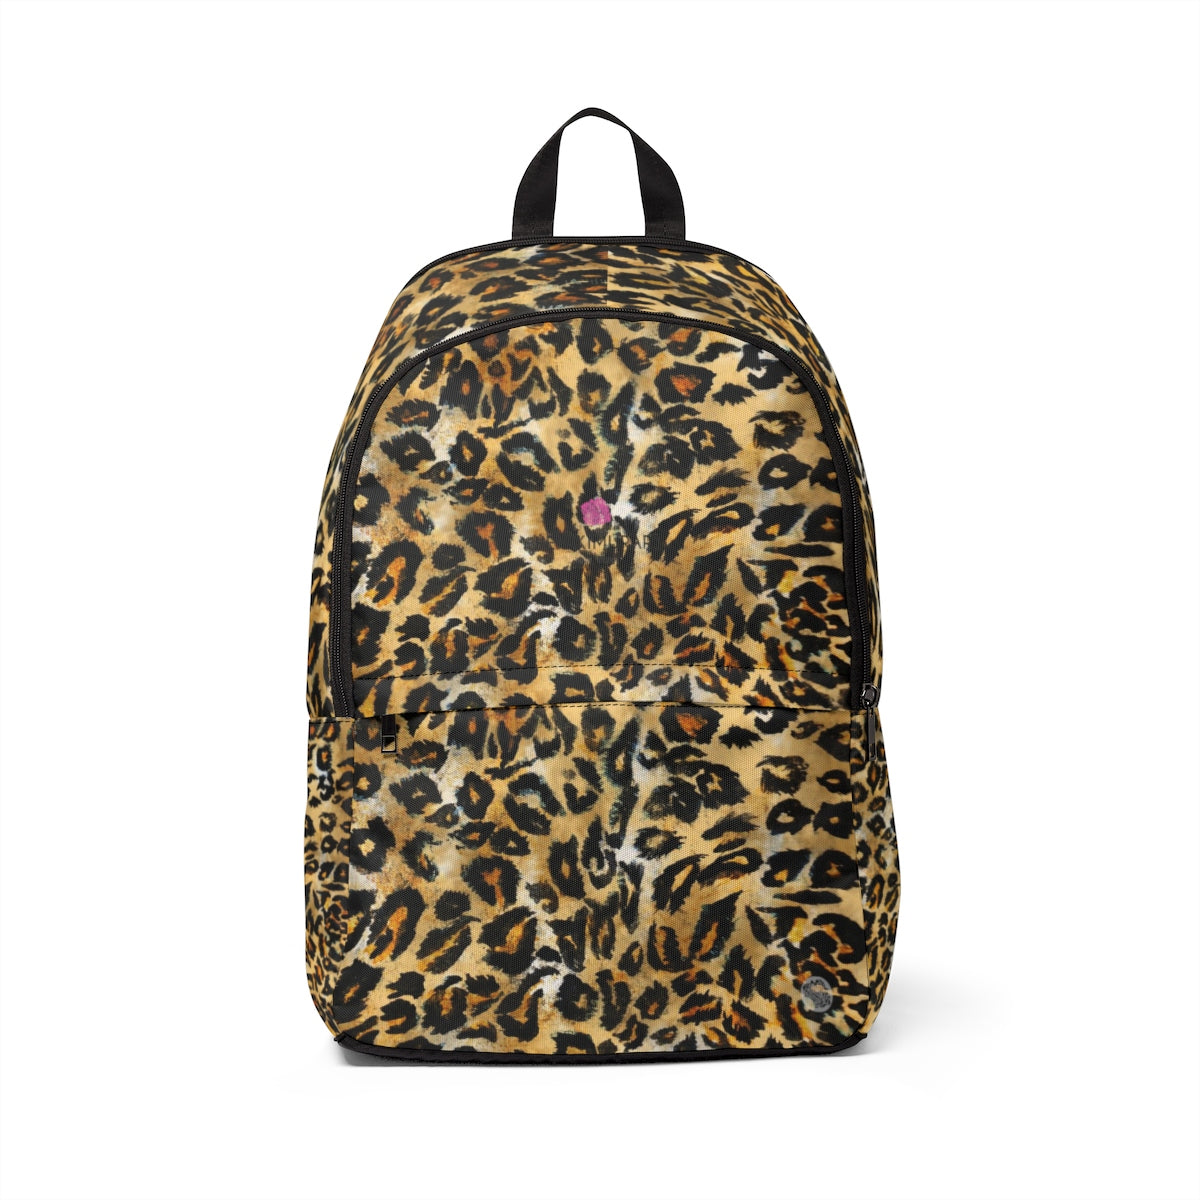 Leopard Animal Skin Faux Fur Print Unisex Large Size Fabric Designer Backpack Bag-Backpack-One Size-Heidi Kimura Art LLC